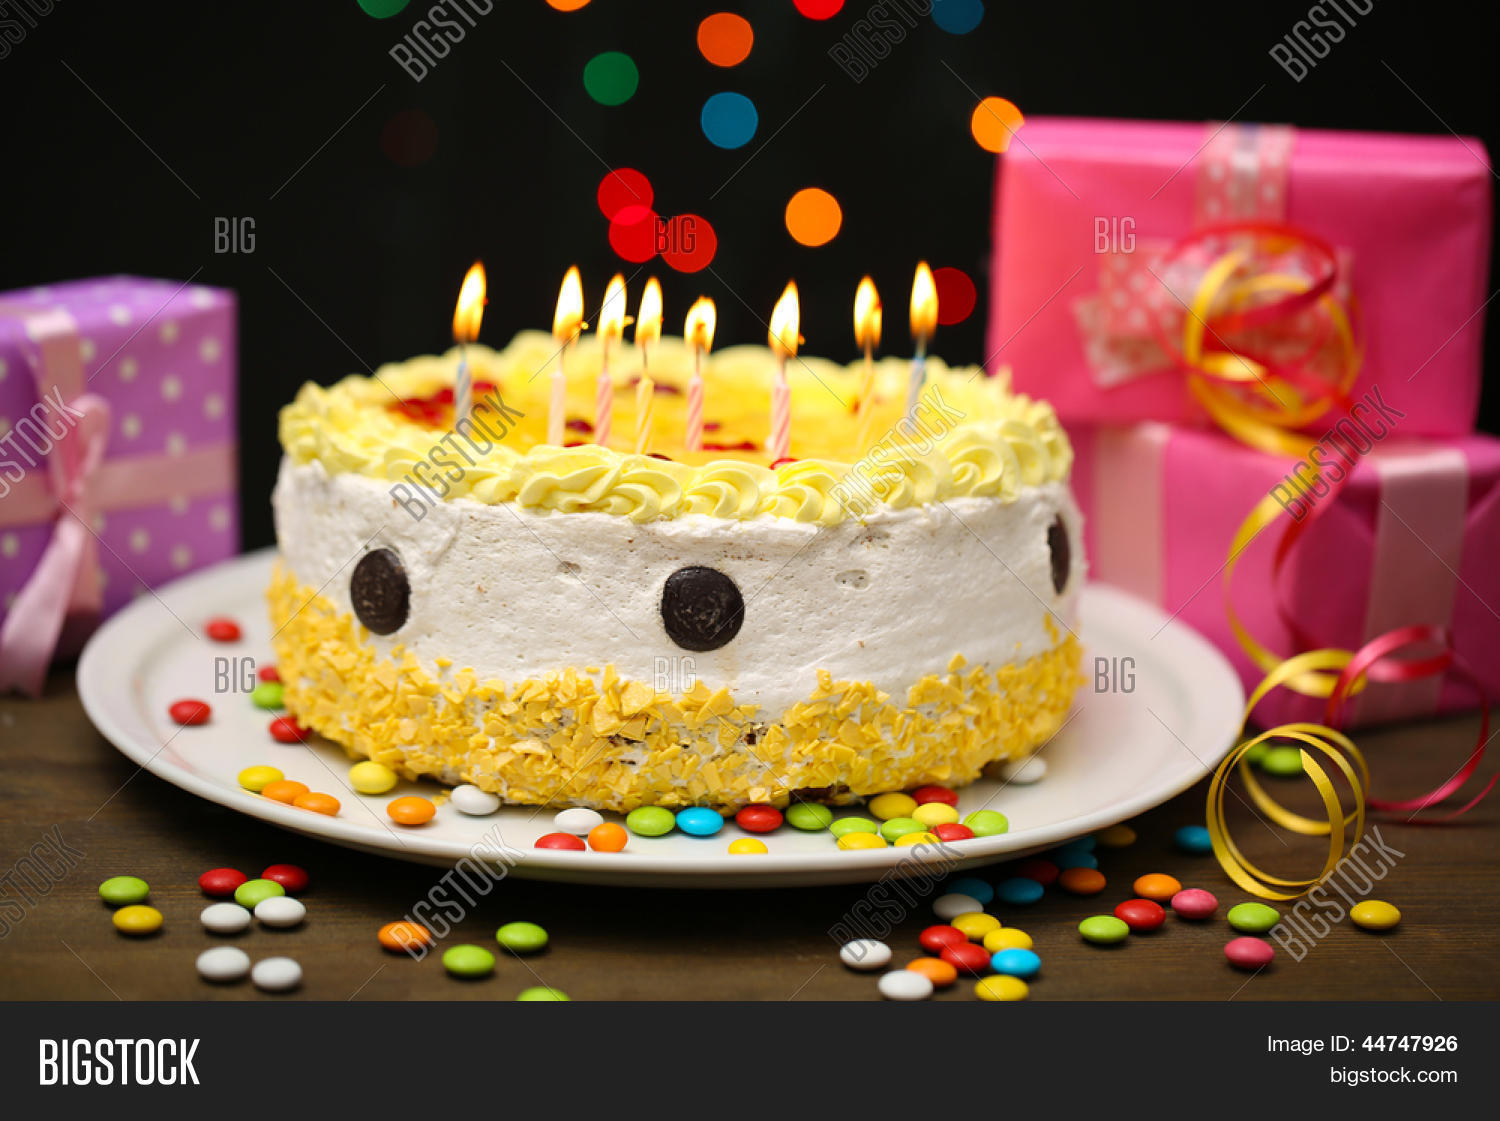 Birthday Cakes Gifts Images ~ Happy birthday cake gifts on black image photo bigstock